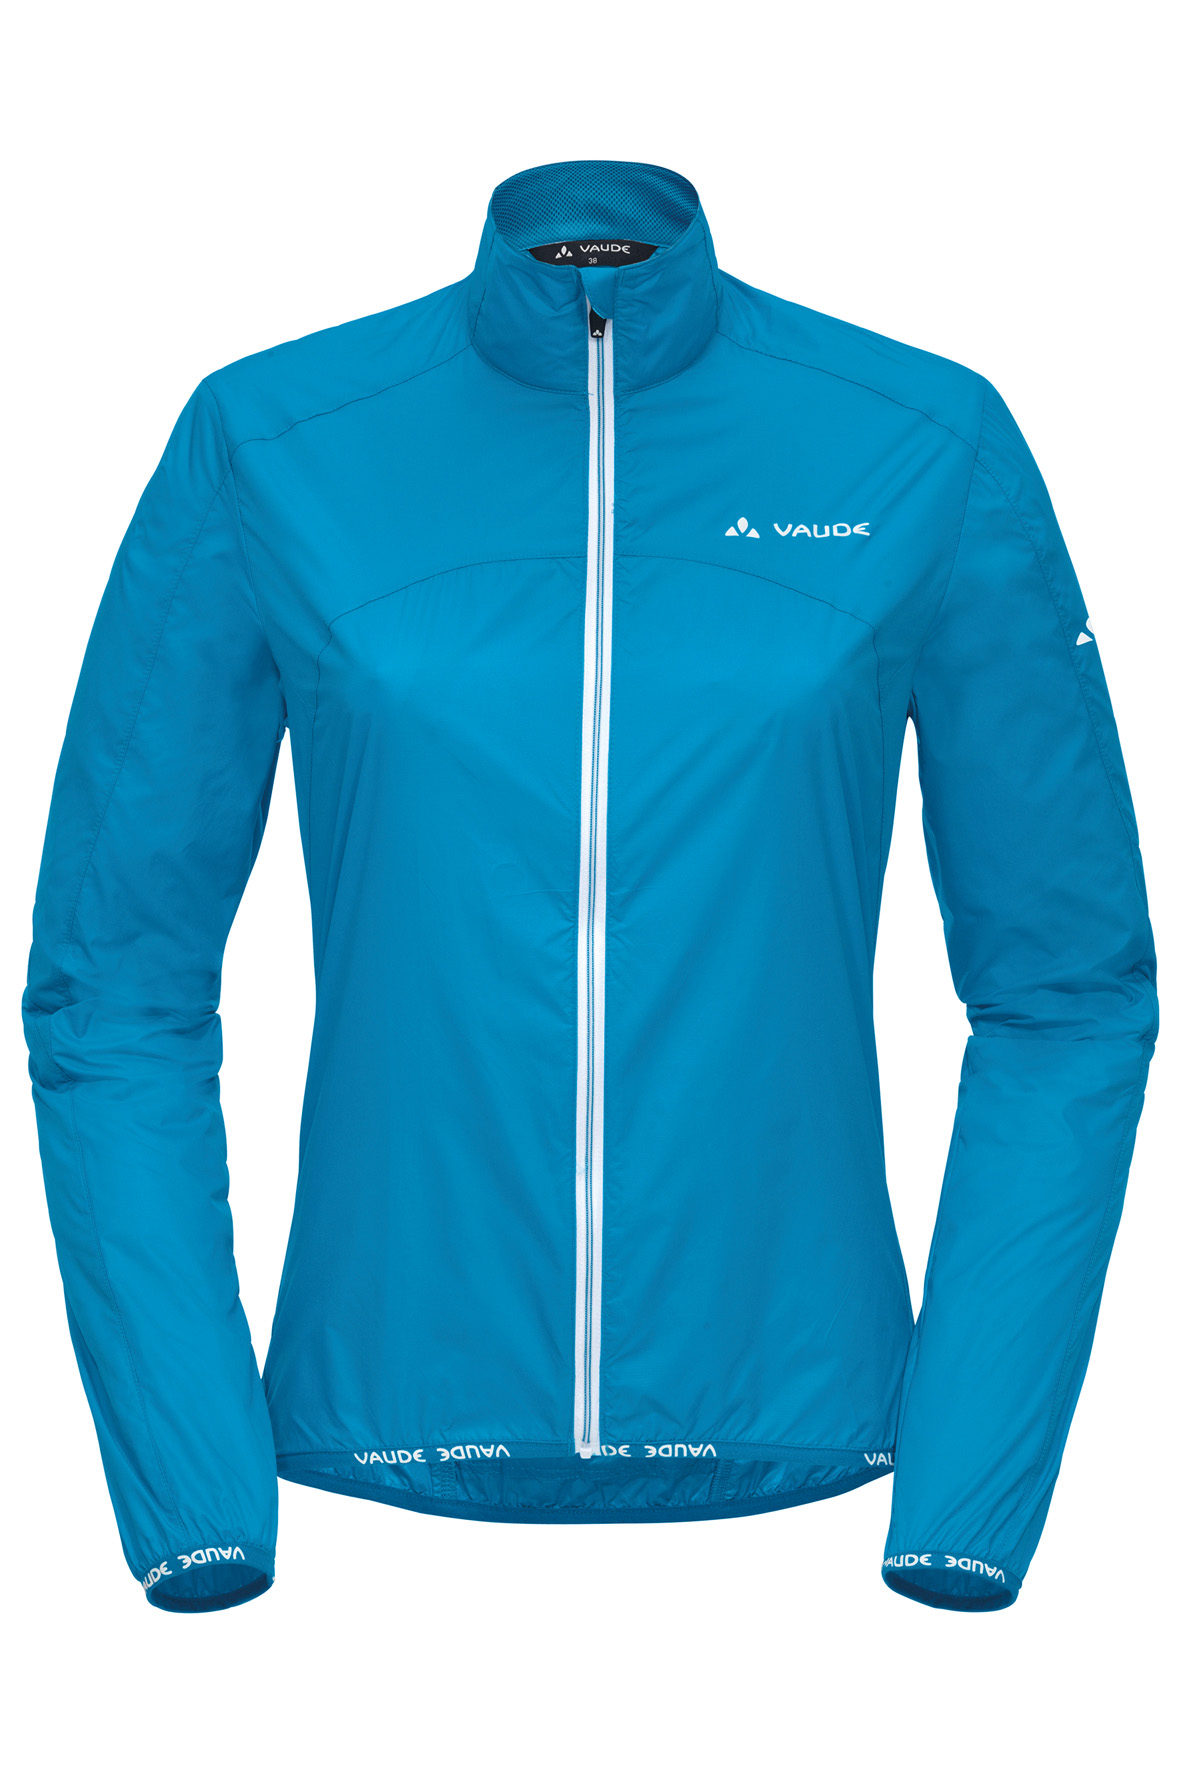 VAUDE Women´s Air Jacket II teal blue Größe 34 - schneider-sports